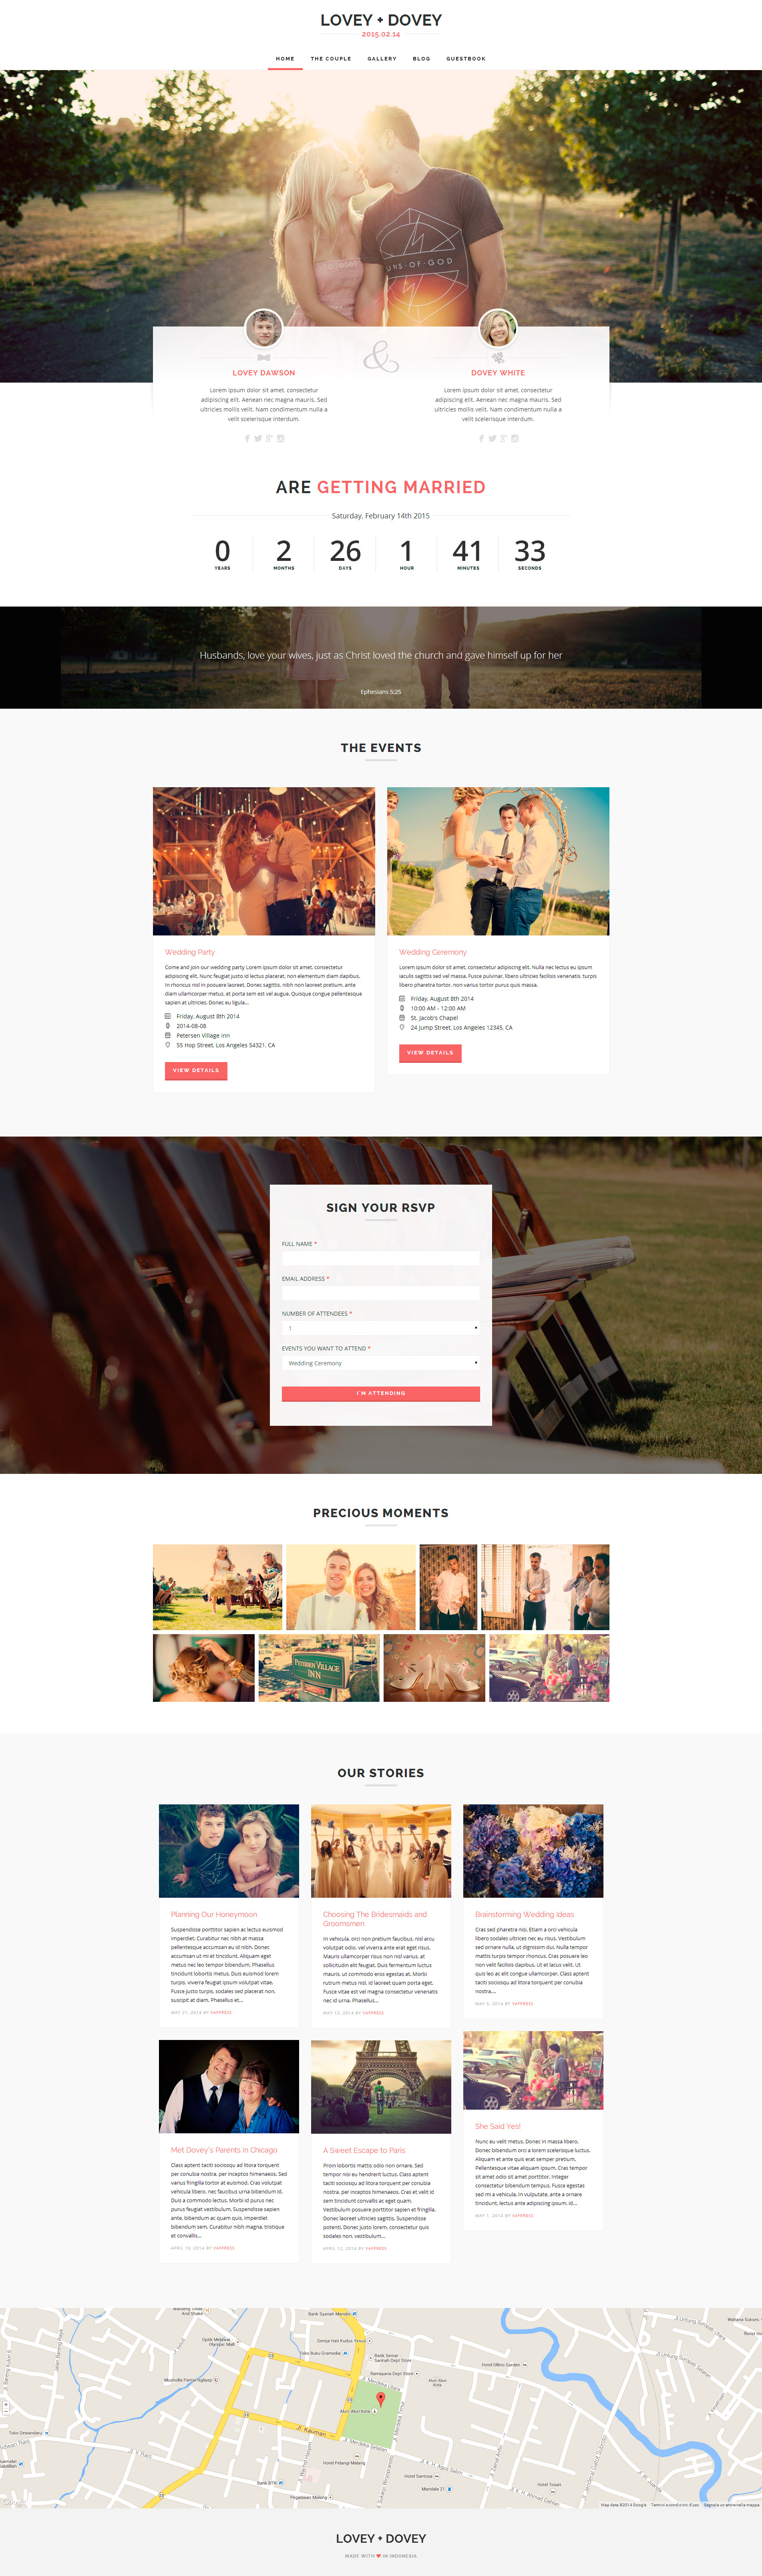 Lovey Dovey - Responsive WordPress Wedding Theme | Wordpress wedding ...